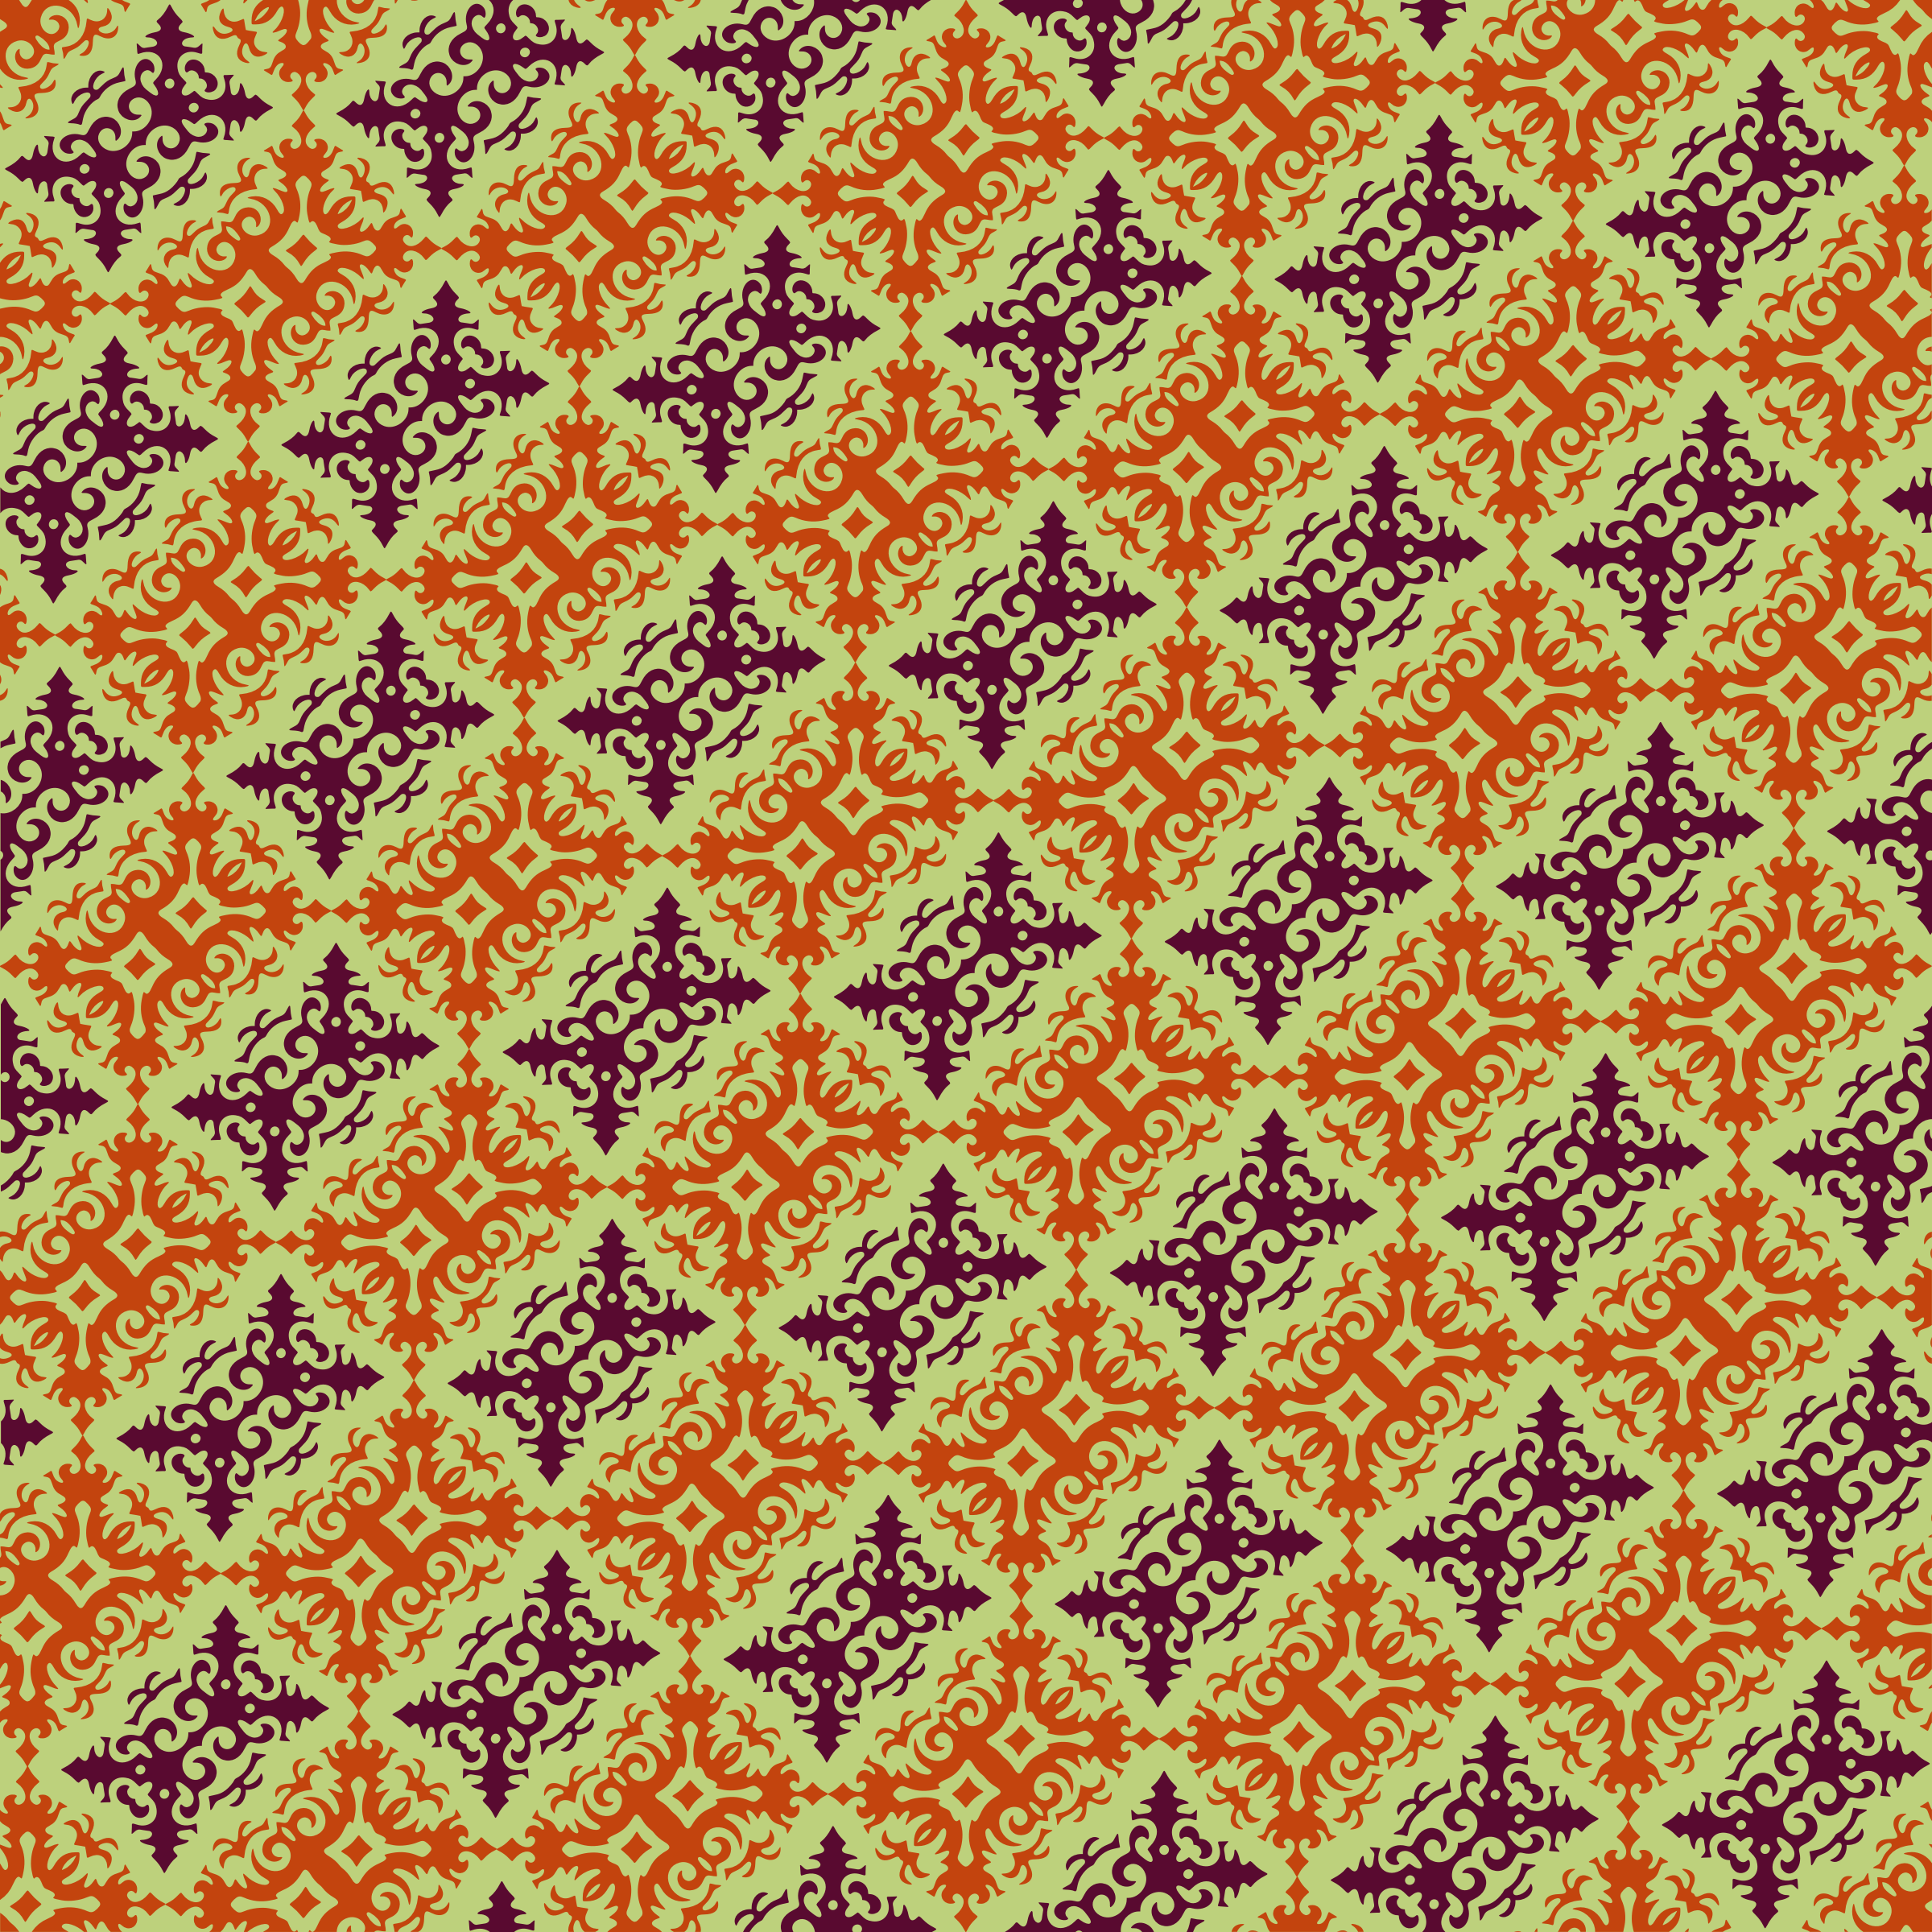 Background pattern 255 (colour) by Firkin